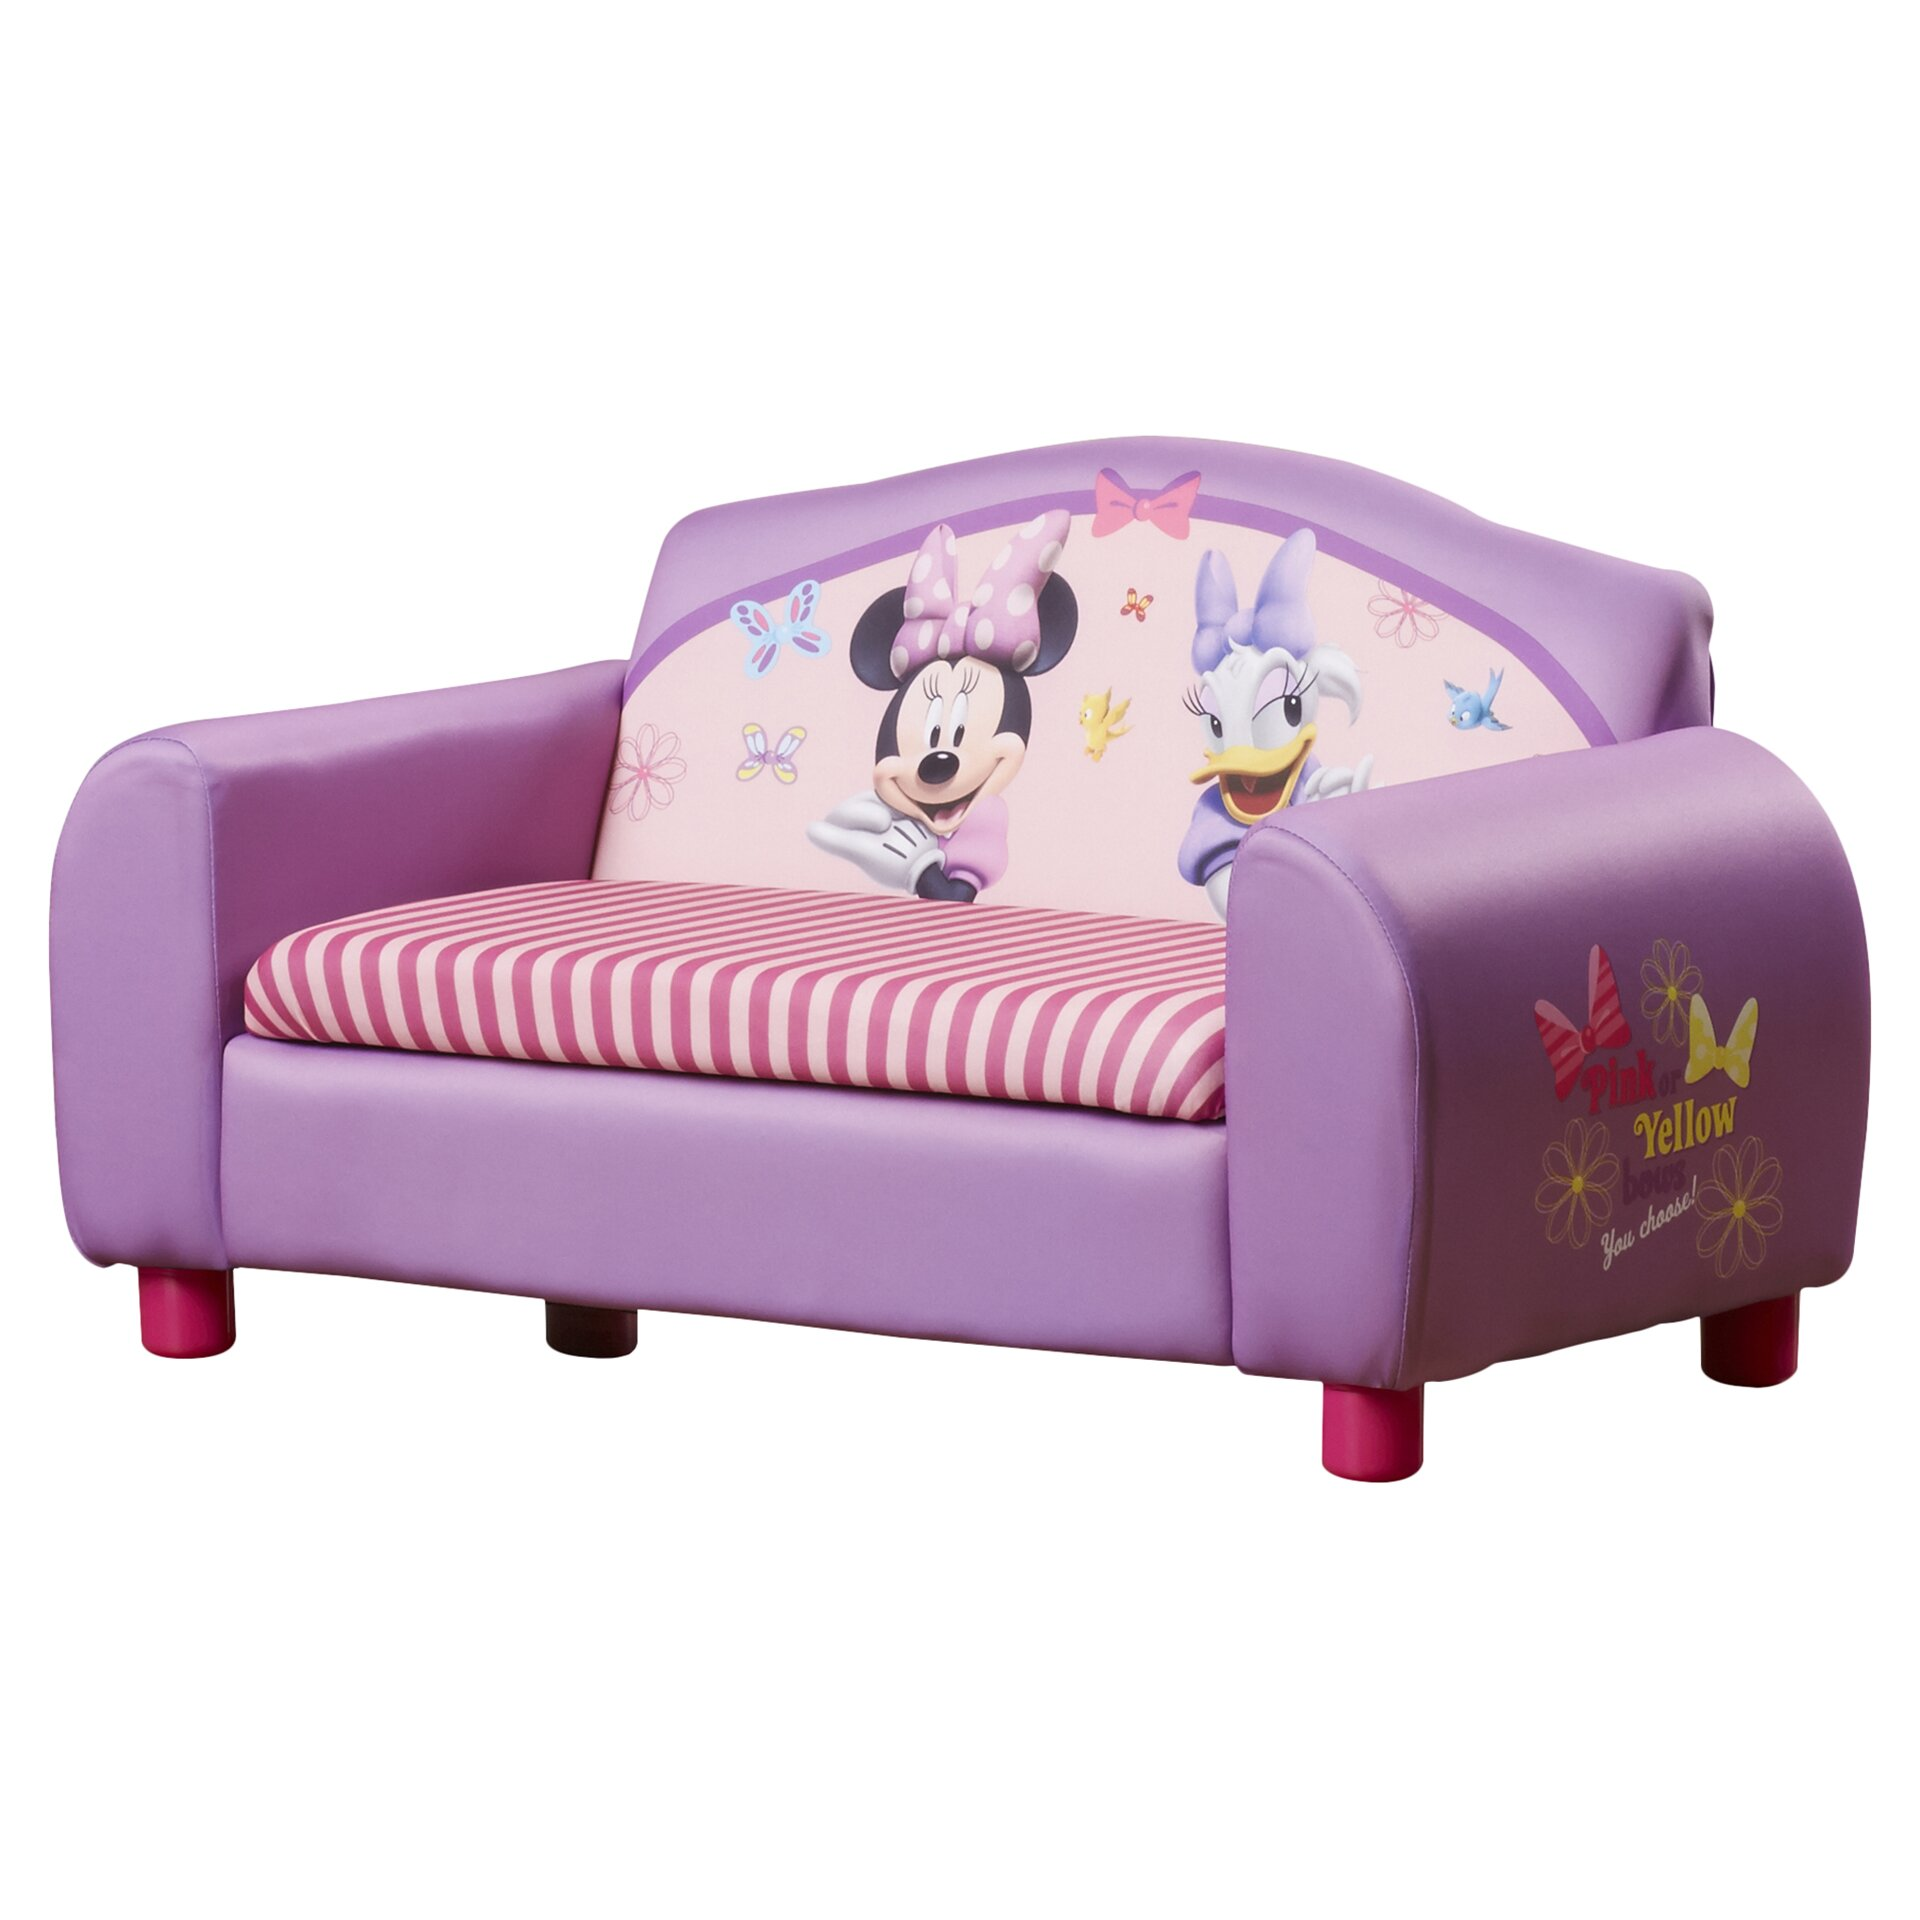 Delta Children Disney Minnie Mouse Kids Sofa with Storage